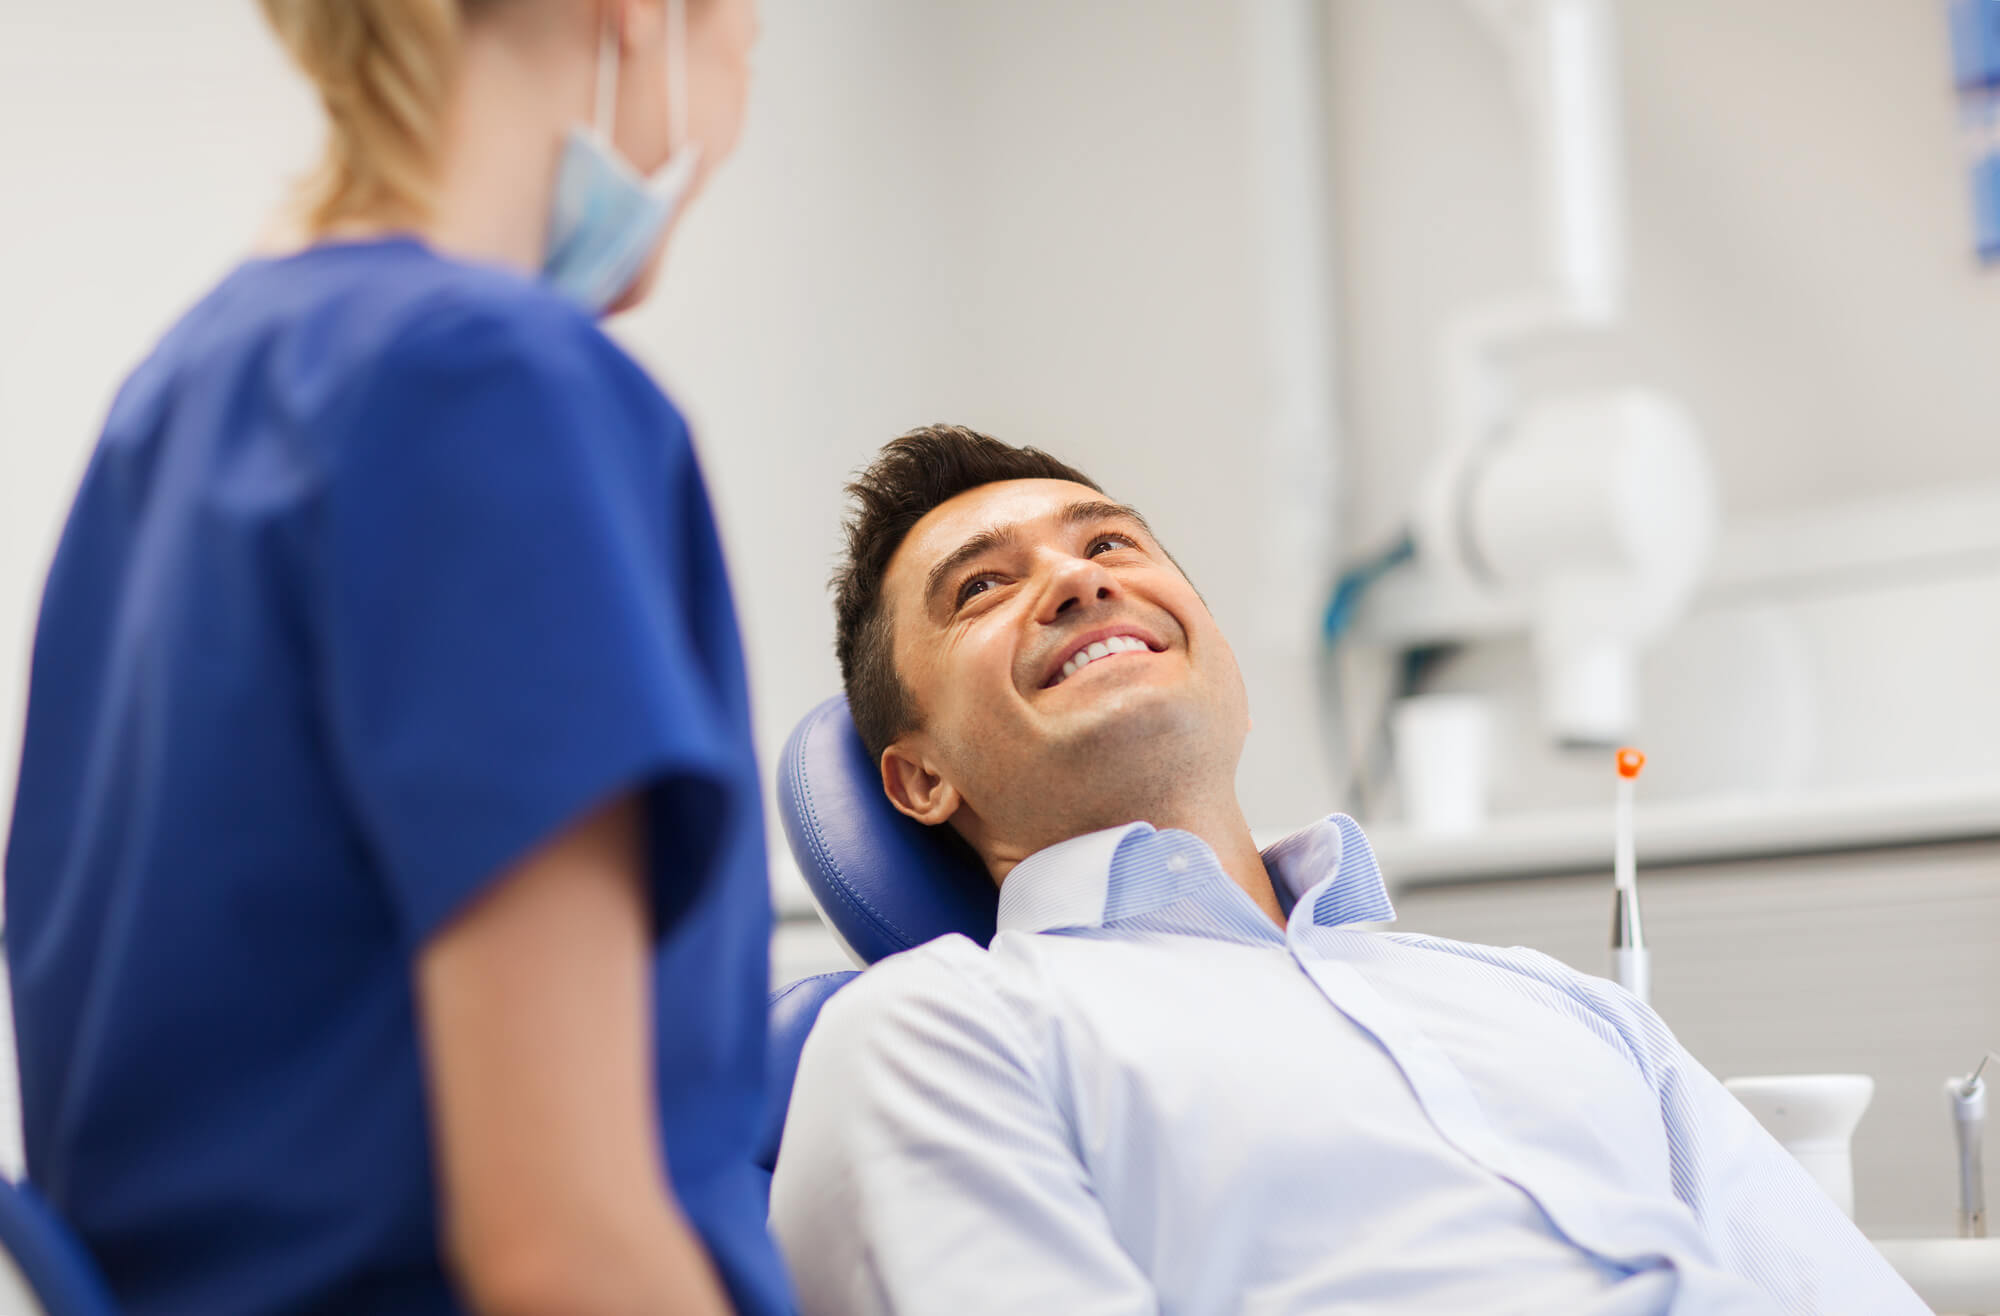 who offers oral cancer screening miami?